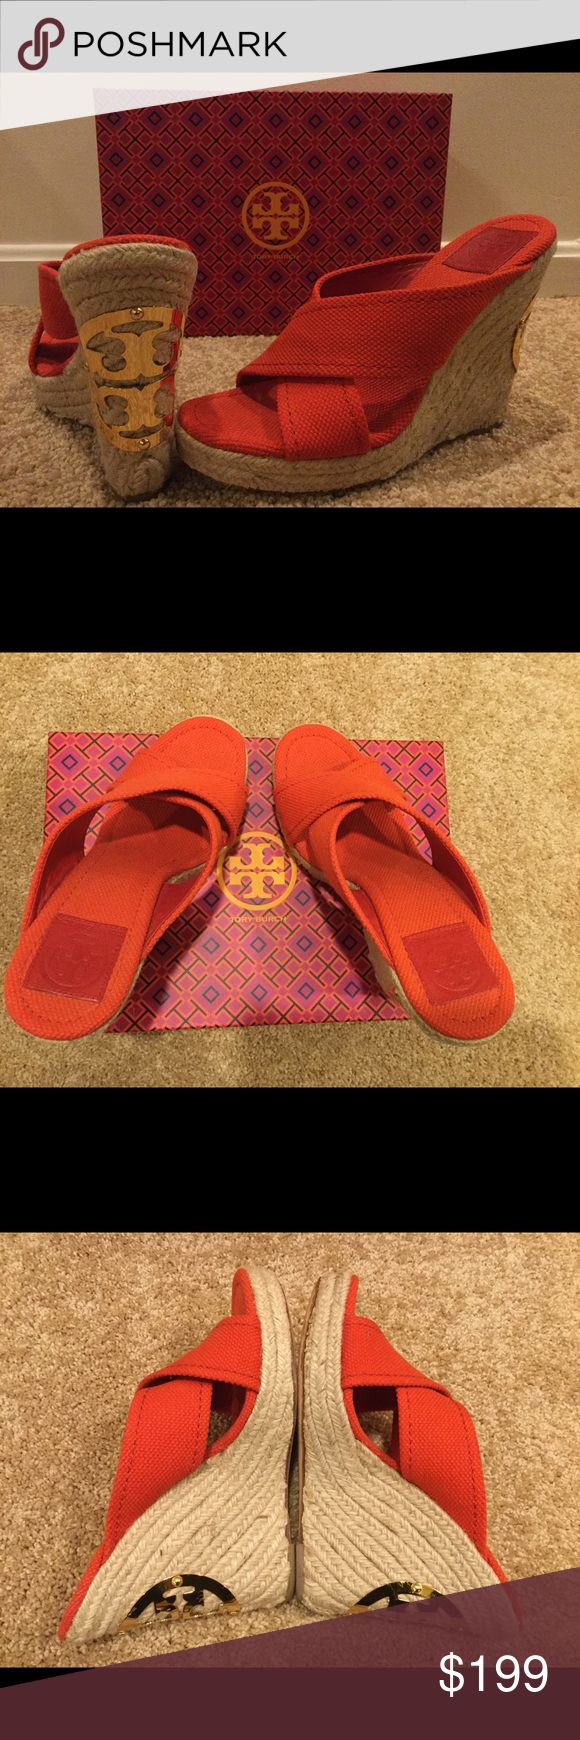 Tory Burch Orange Espadrille Wedges Tory Burch Orange Espadrille Wedges open toe with gold Hardware! High heels but comfortable because of the wedge style. Tory burch symbol on the back of the wedge. Beautiful style and color! No dustbag or shoebox! Gently used! Tory Burch Shoes Wedges